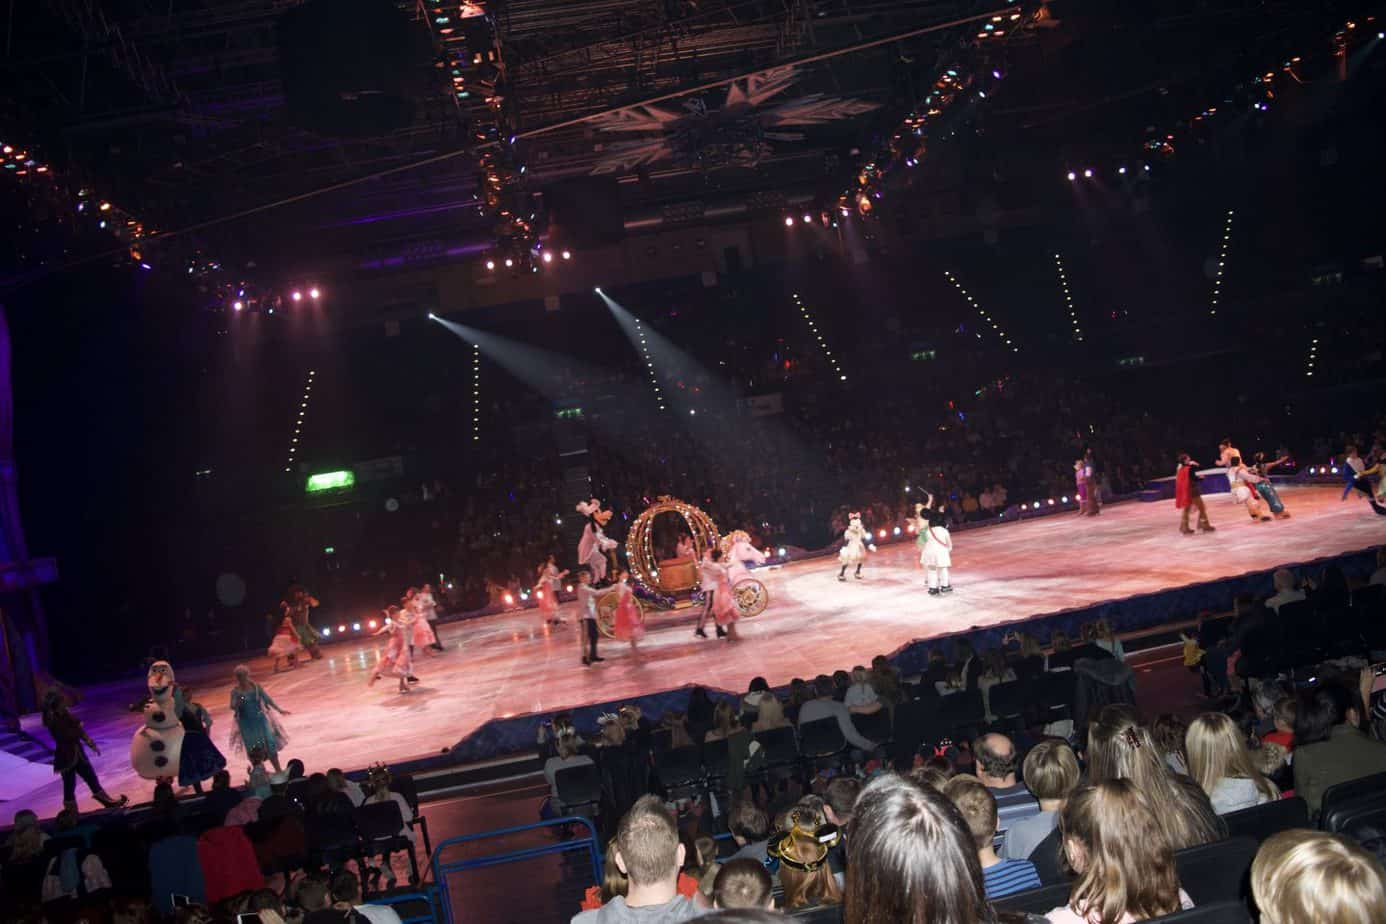 The finale of the show of Disney on ice